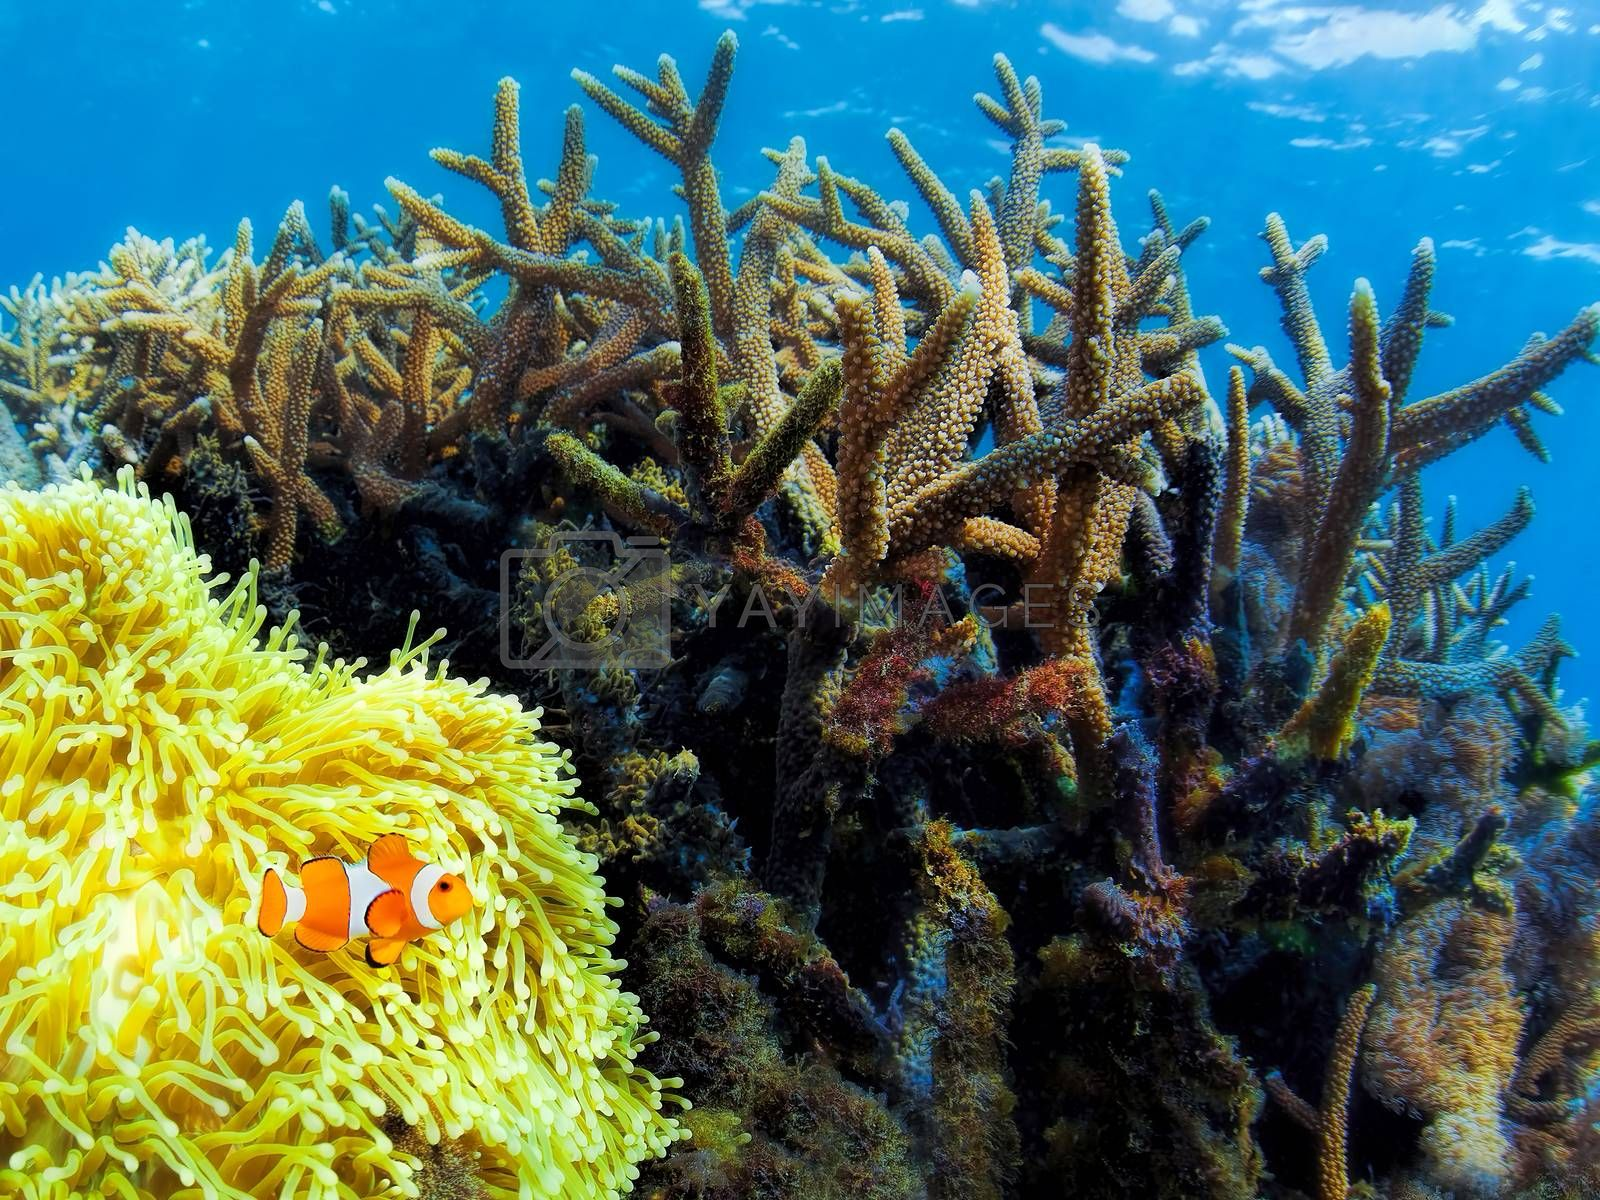 Colorful corals in the underwater landscape on Bali, Indonesia